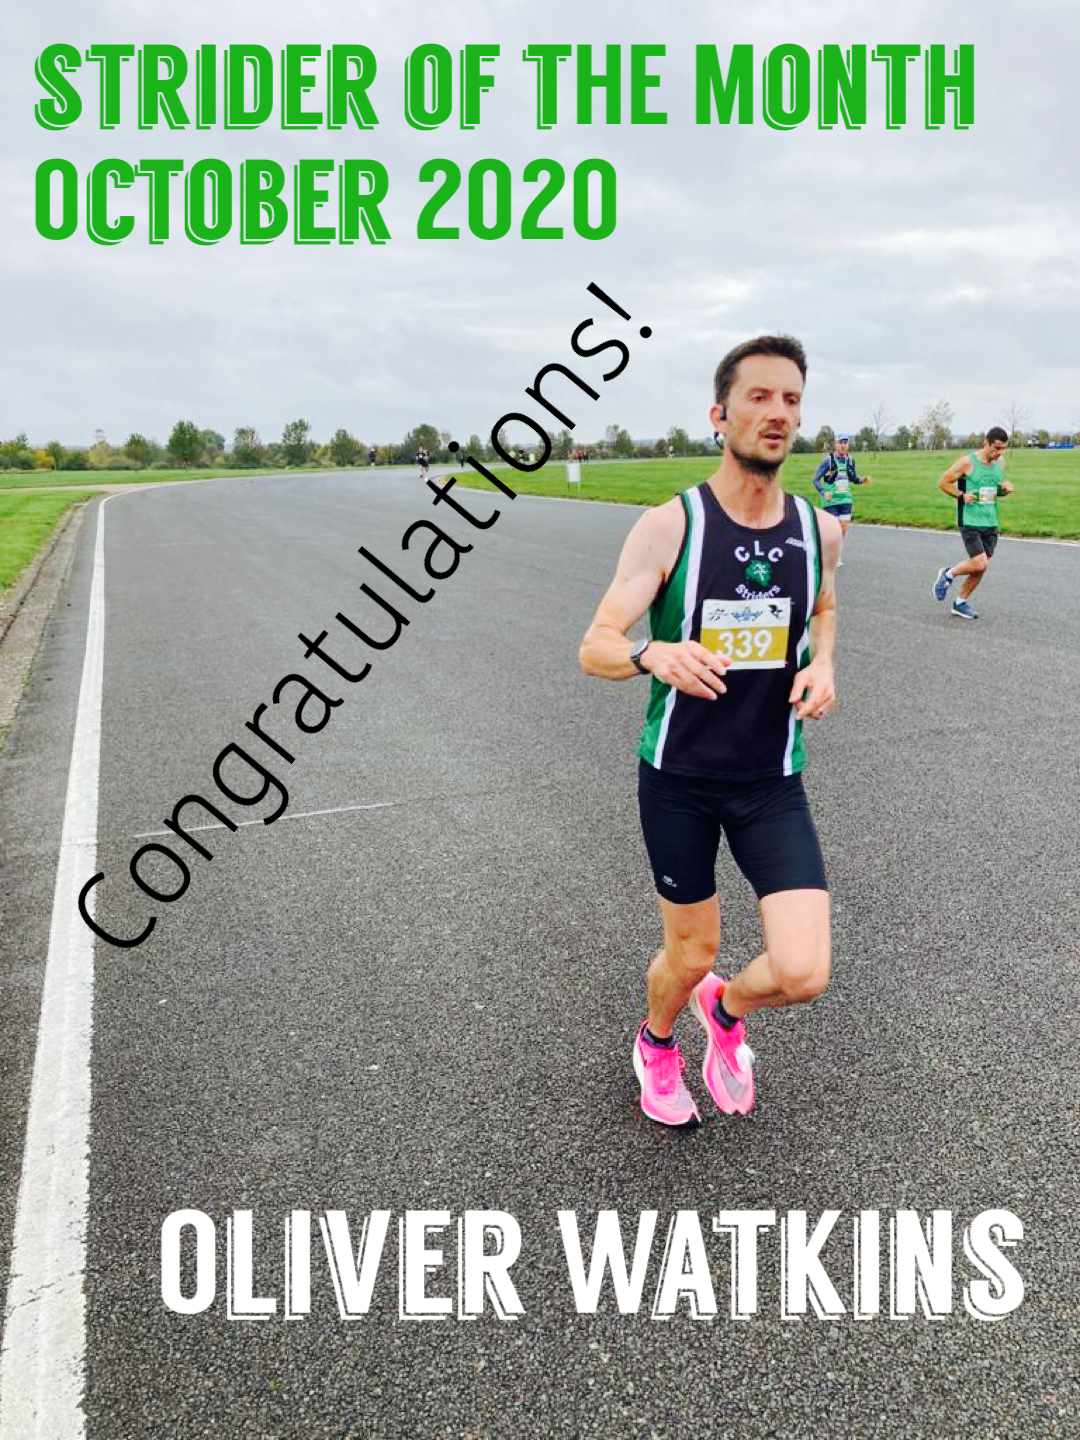 Strider of the month Oliver Watkins